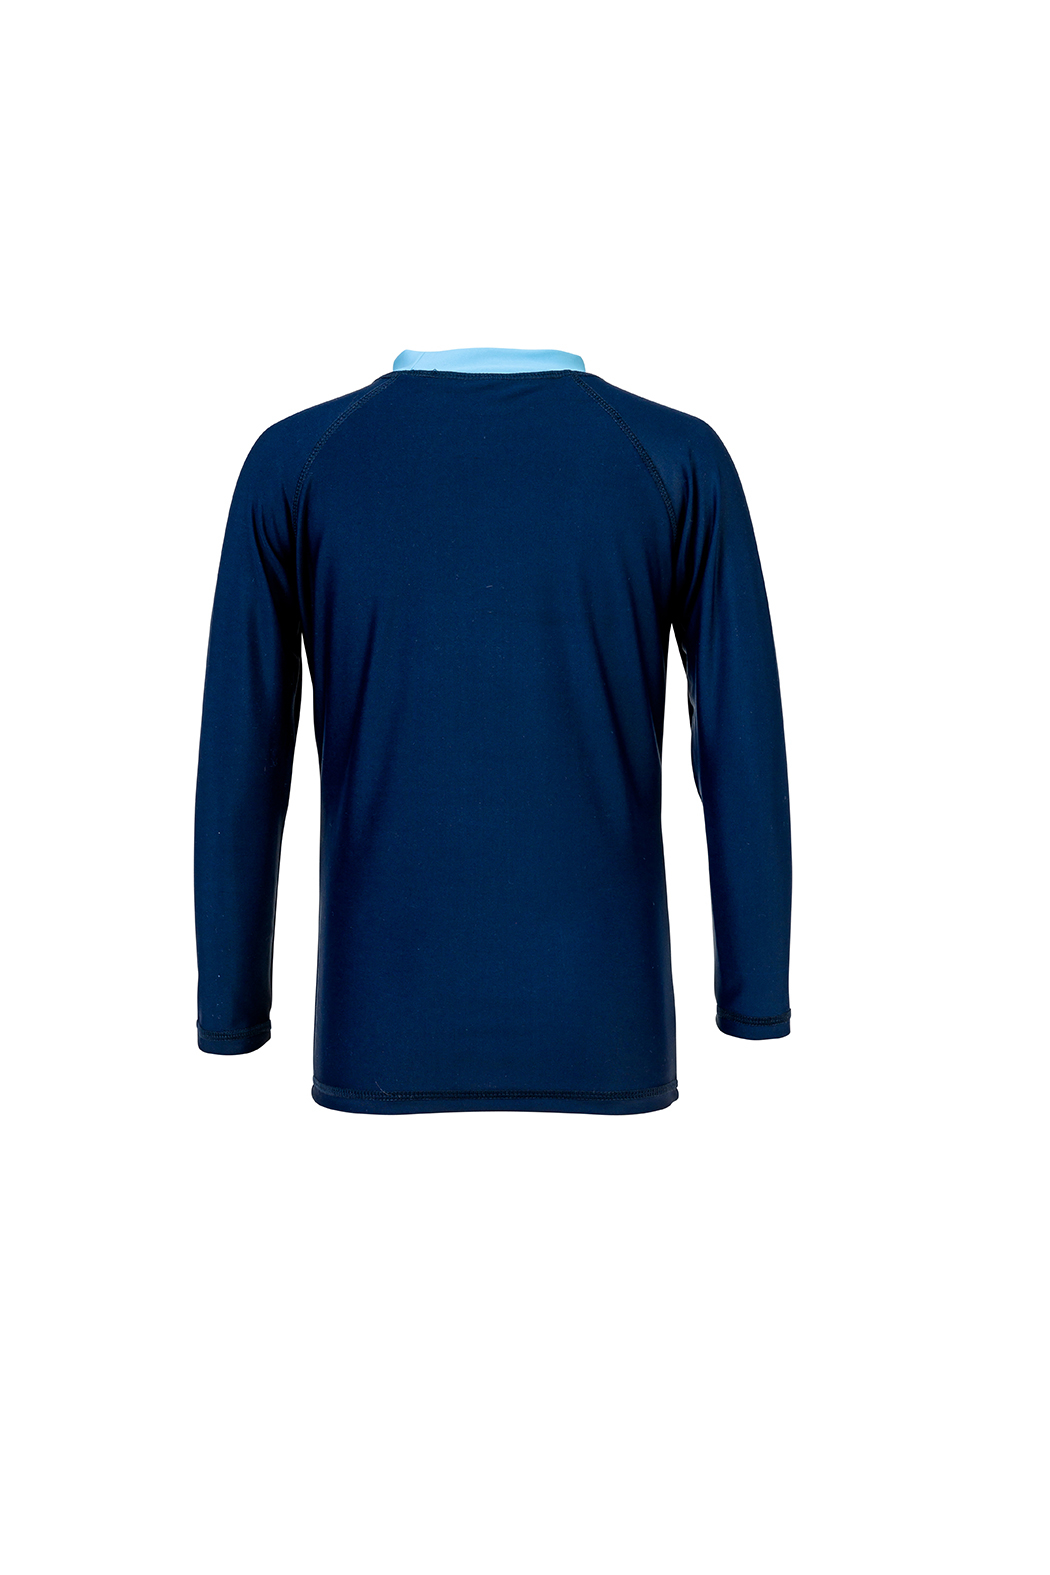 Snapper Rock Navy Sleeve Band Long Sleeve Rash Top - Front Cropped Image